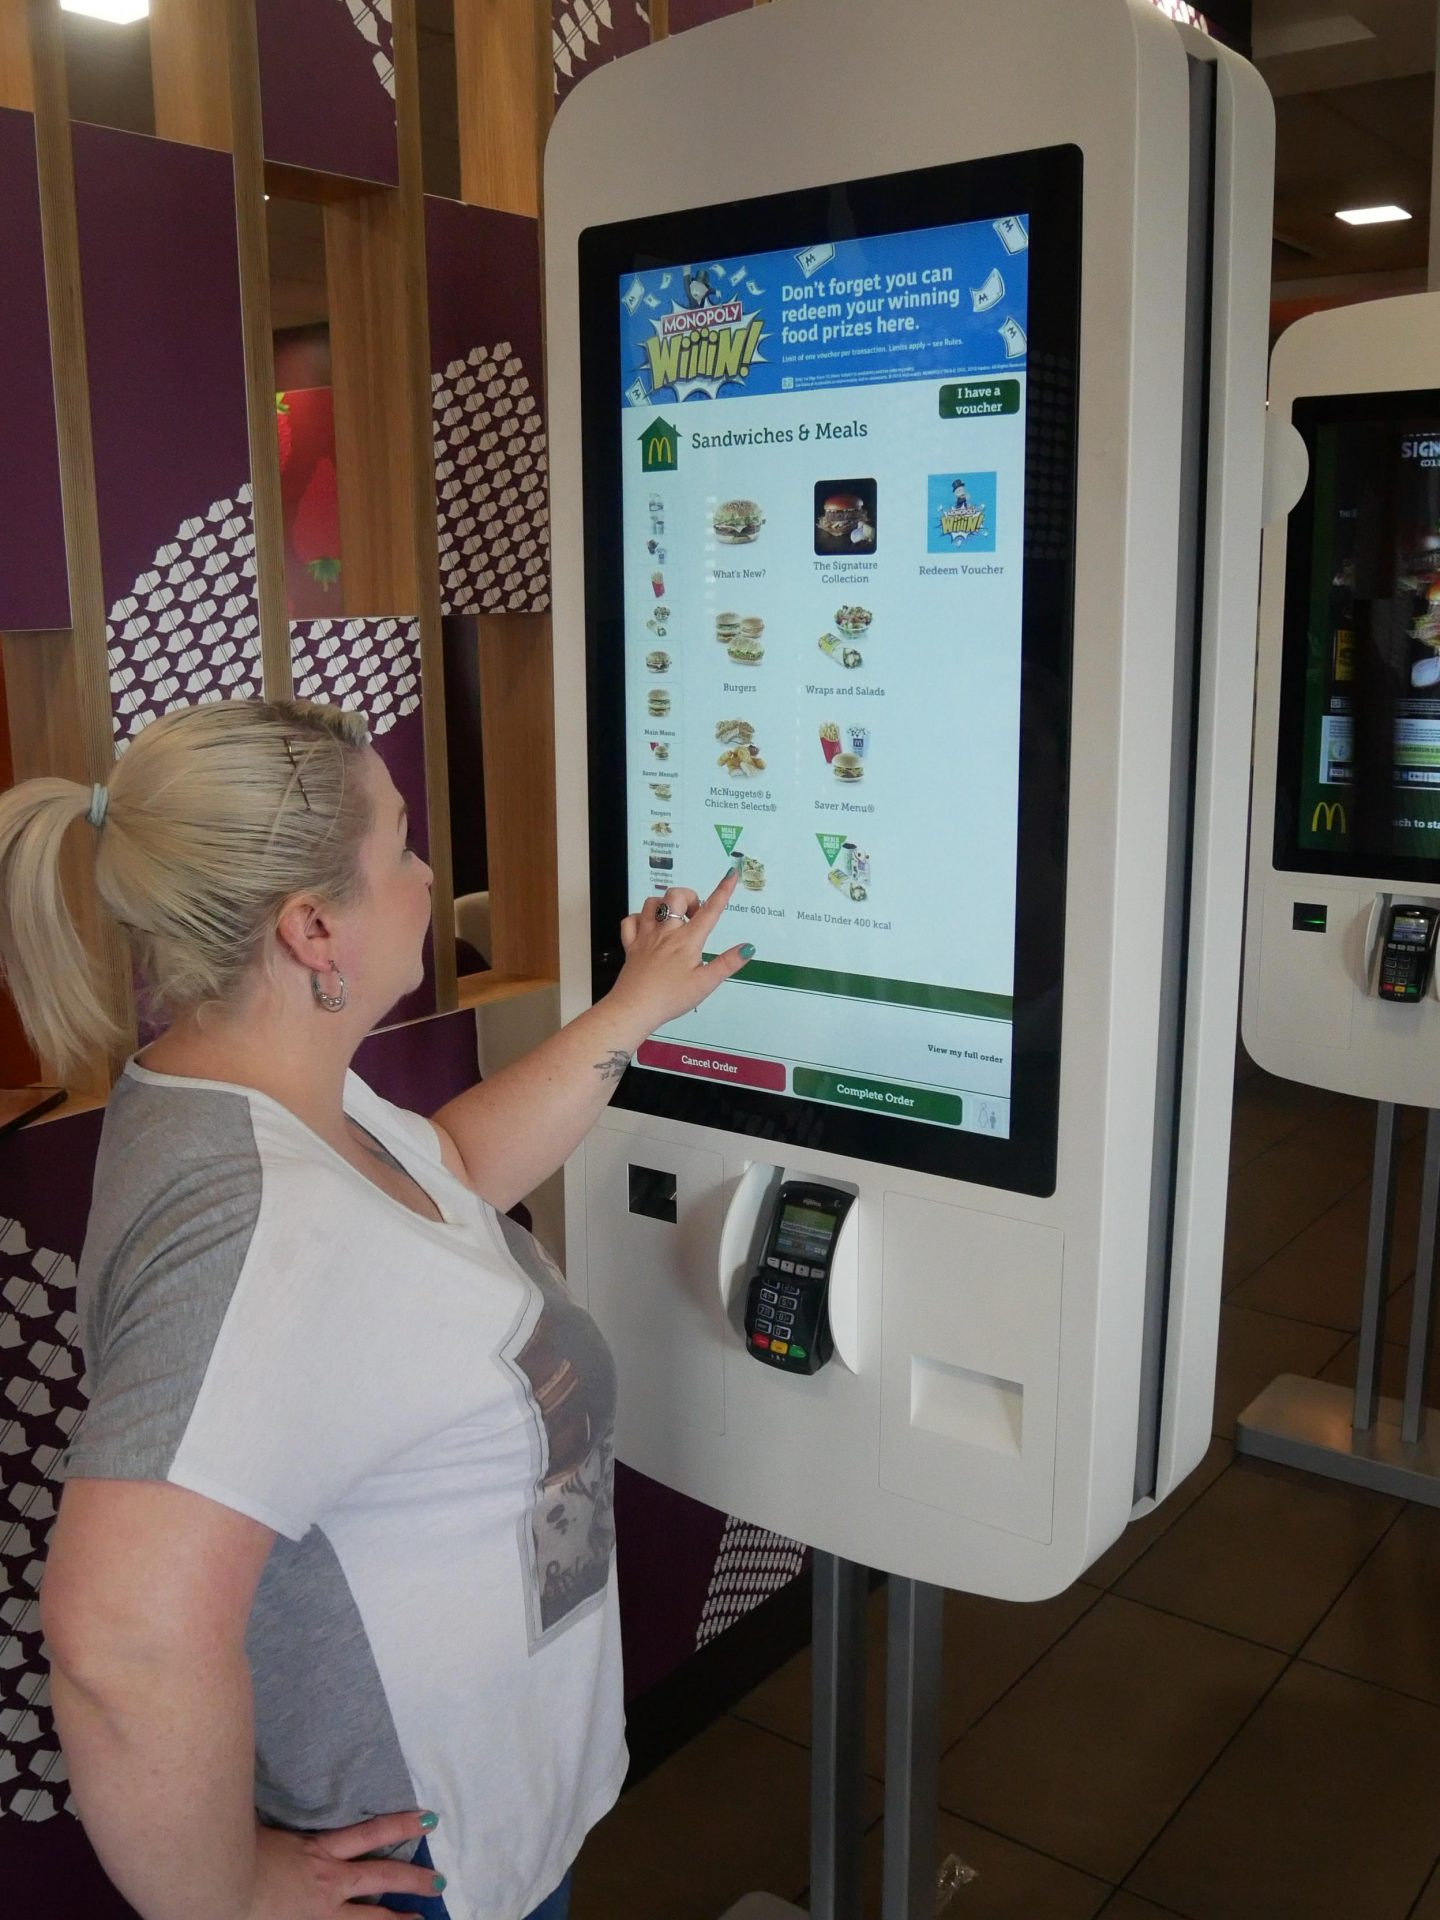 Ordering McDonald's Table Service at the Digital Kiosk